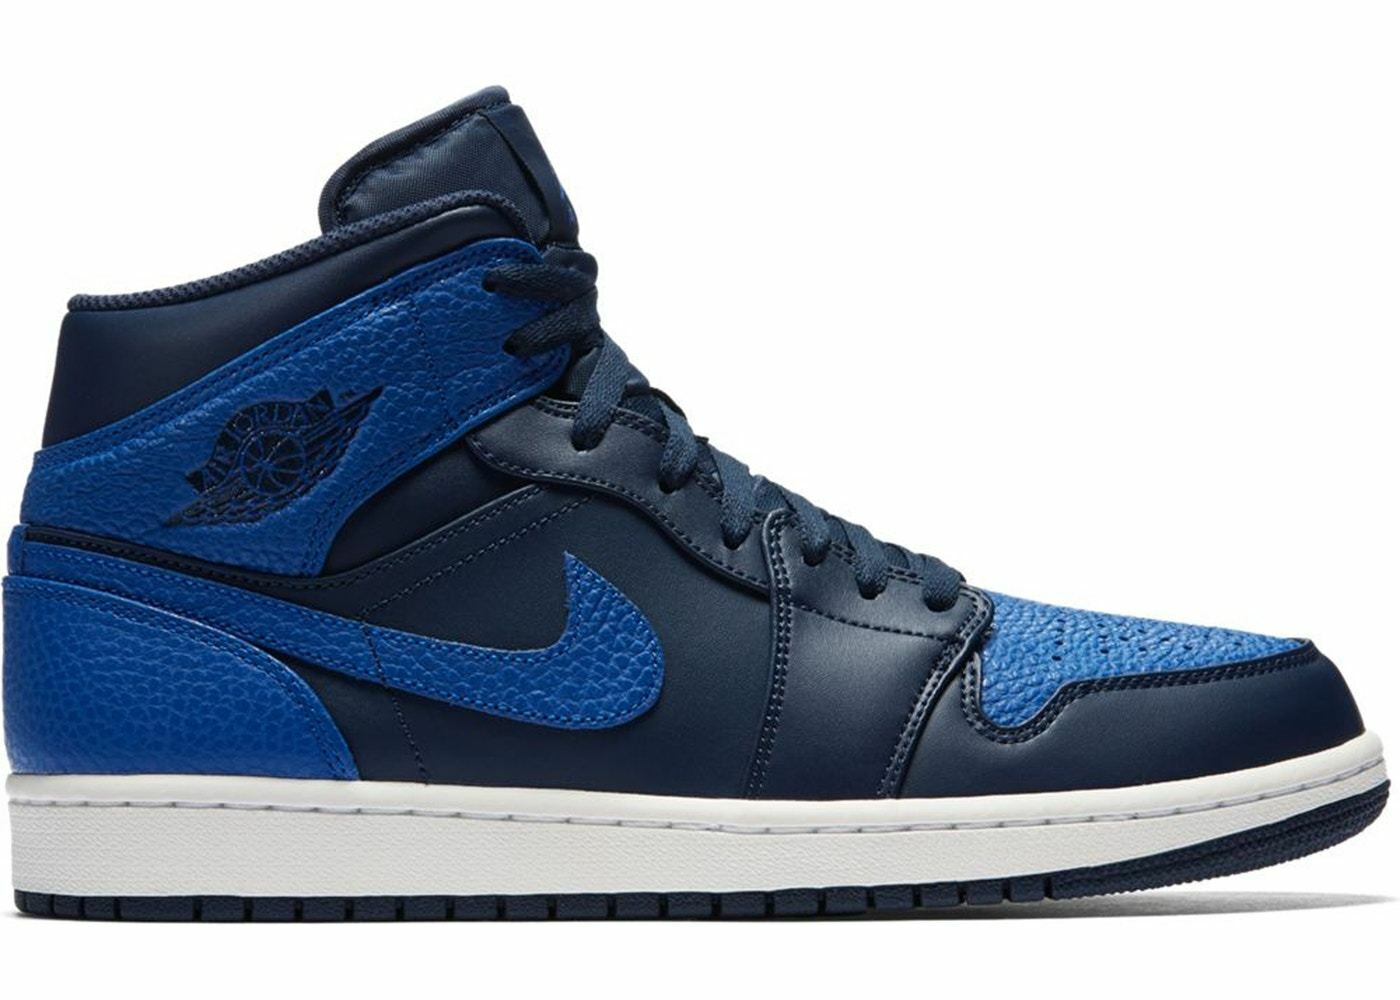 Air Air Air Jordan 1 One Retro Mid Obsidian Game Royal blu 554724-412 Dimensione 8-13 d87b1c